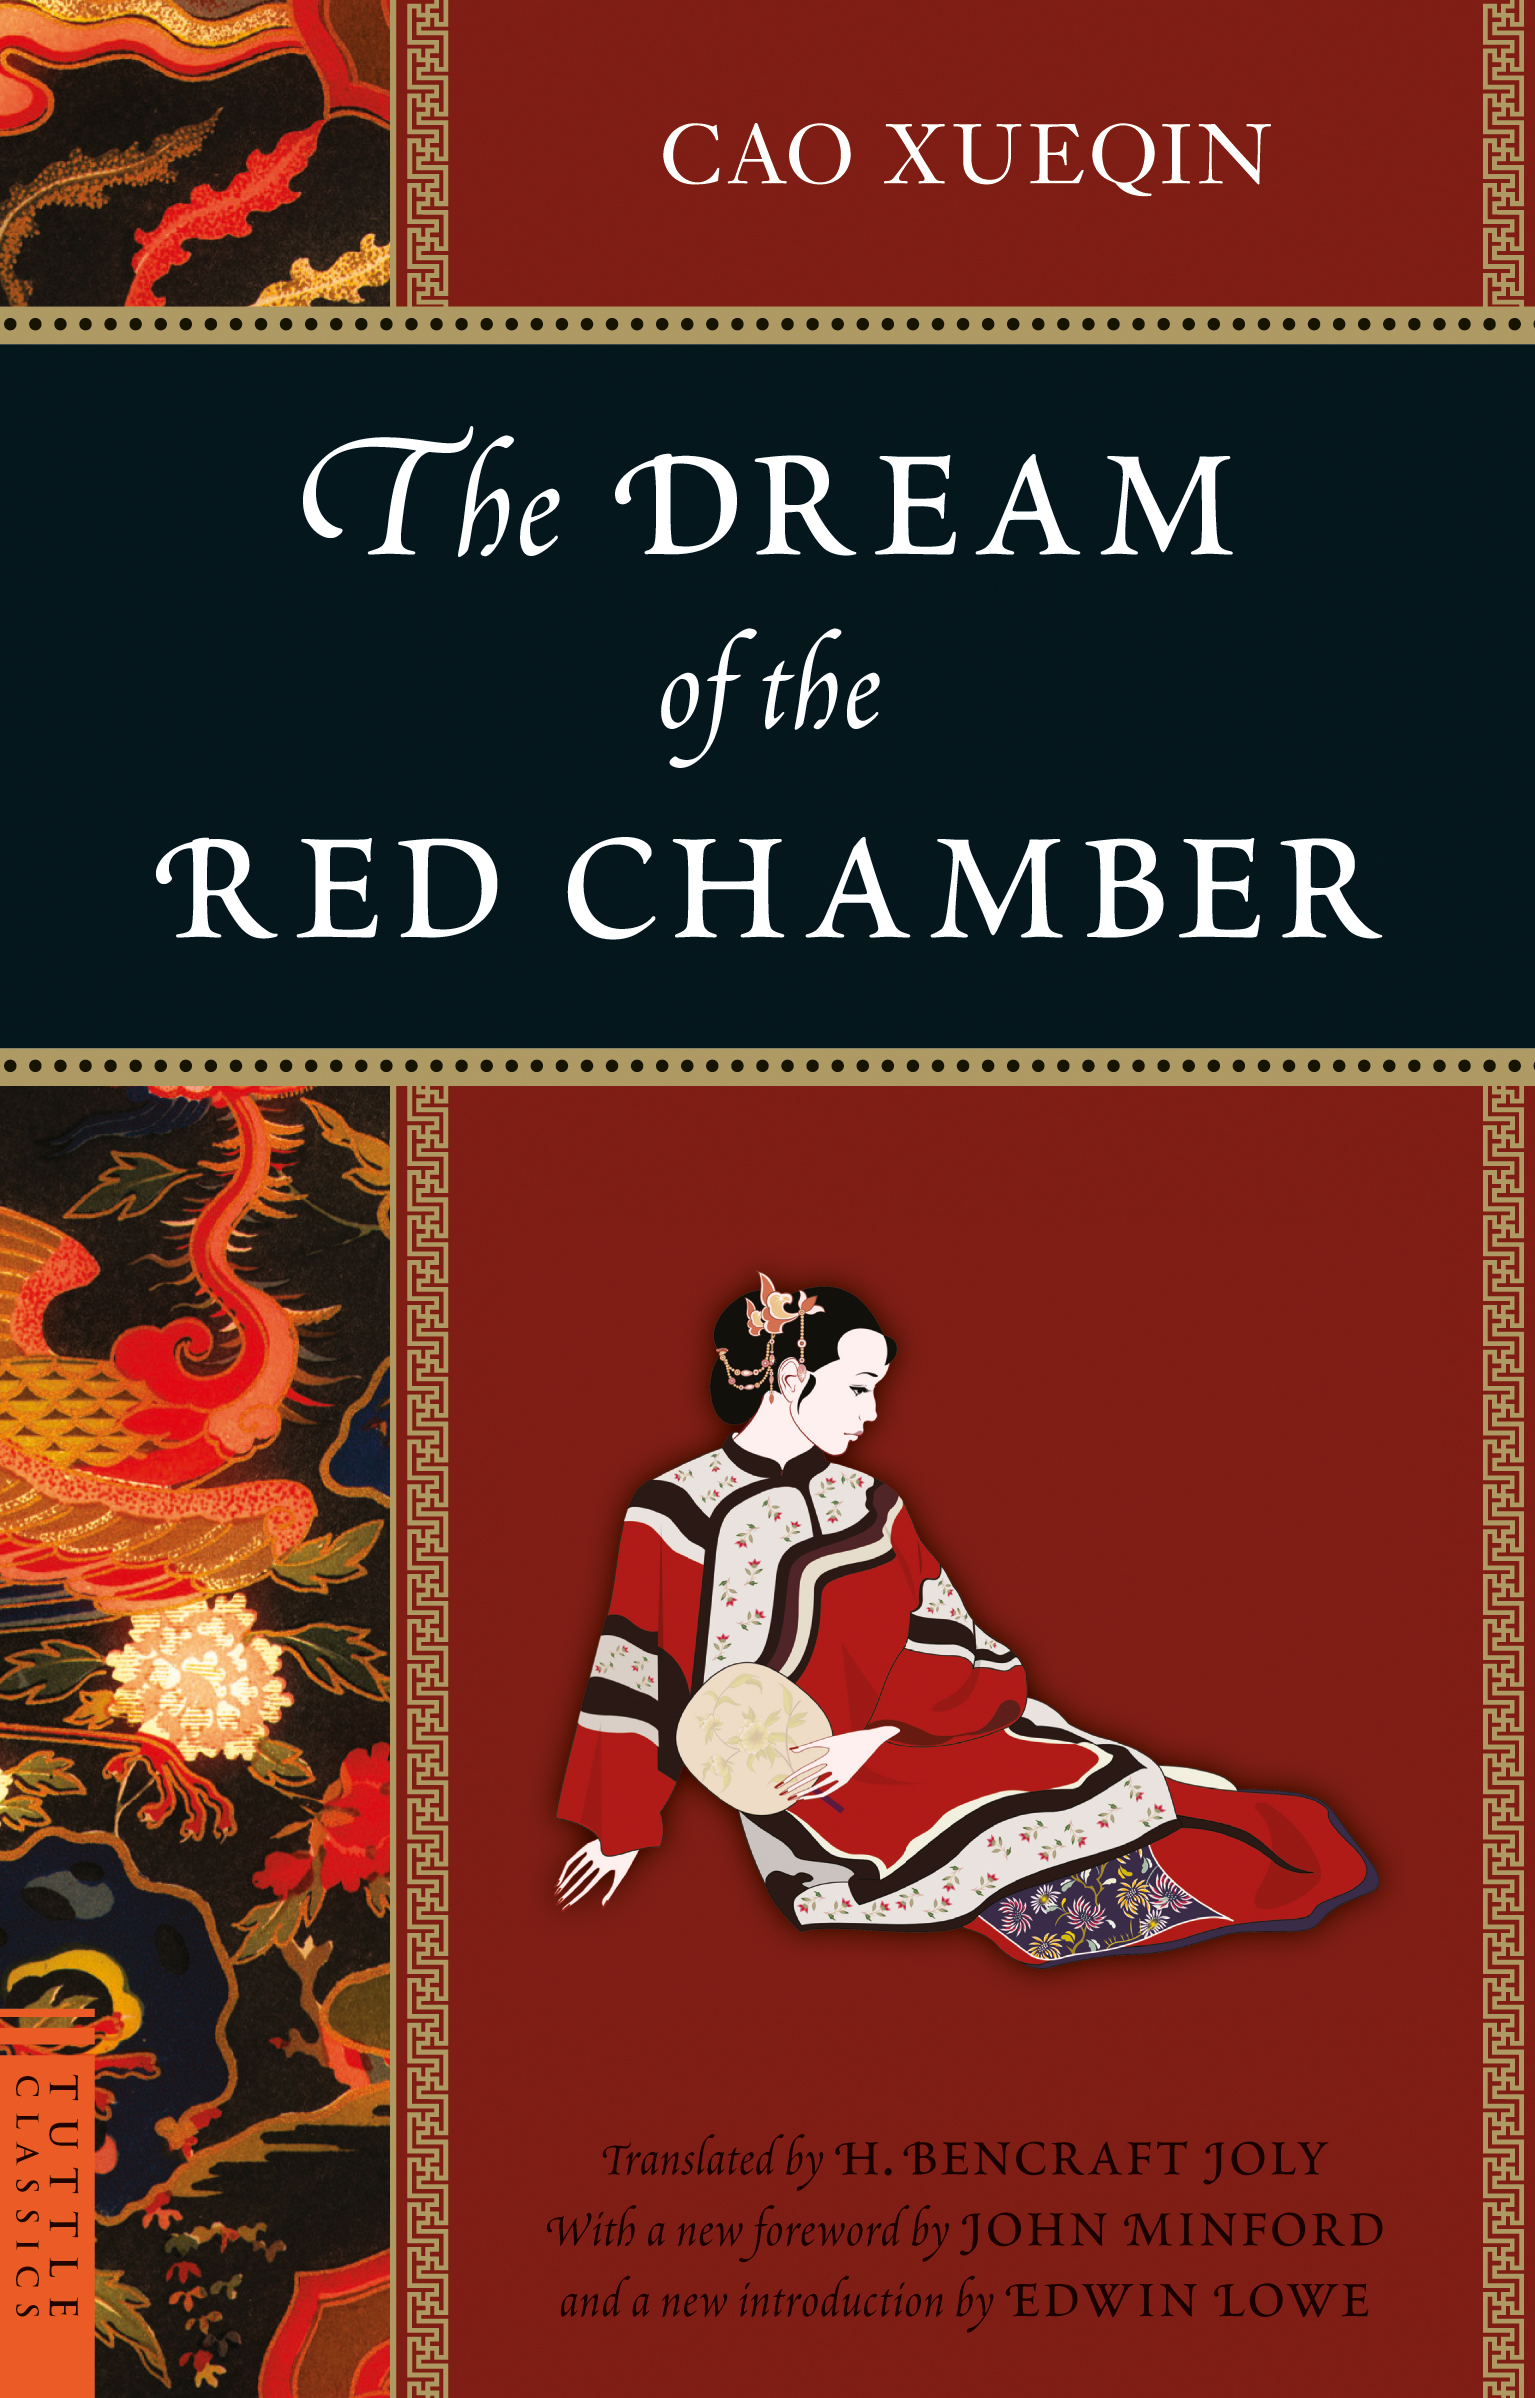 Image result for dreams of red chamber book cover